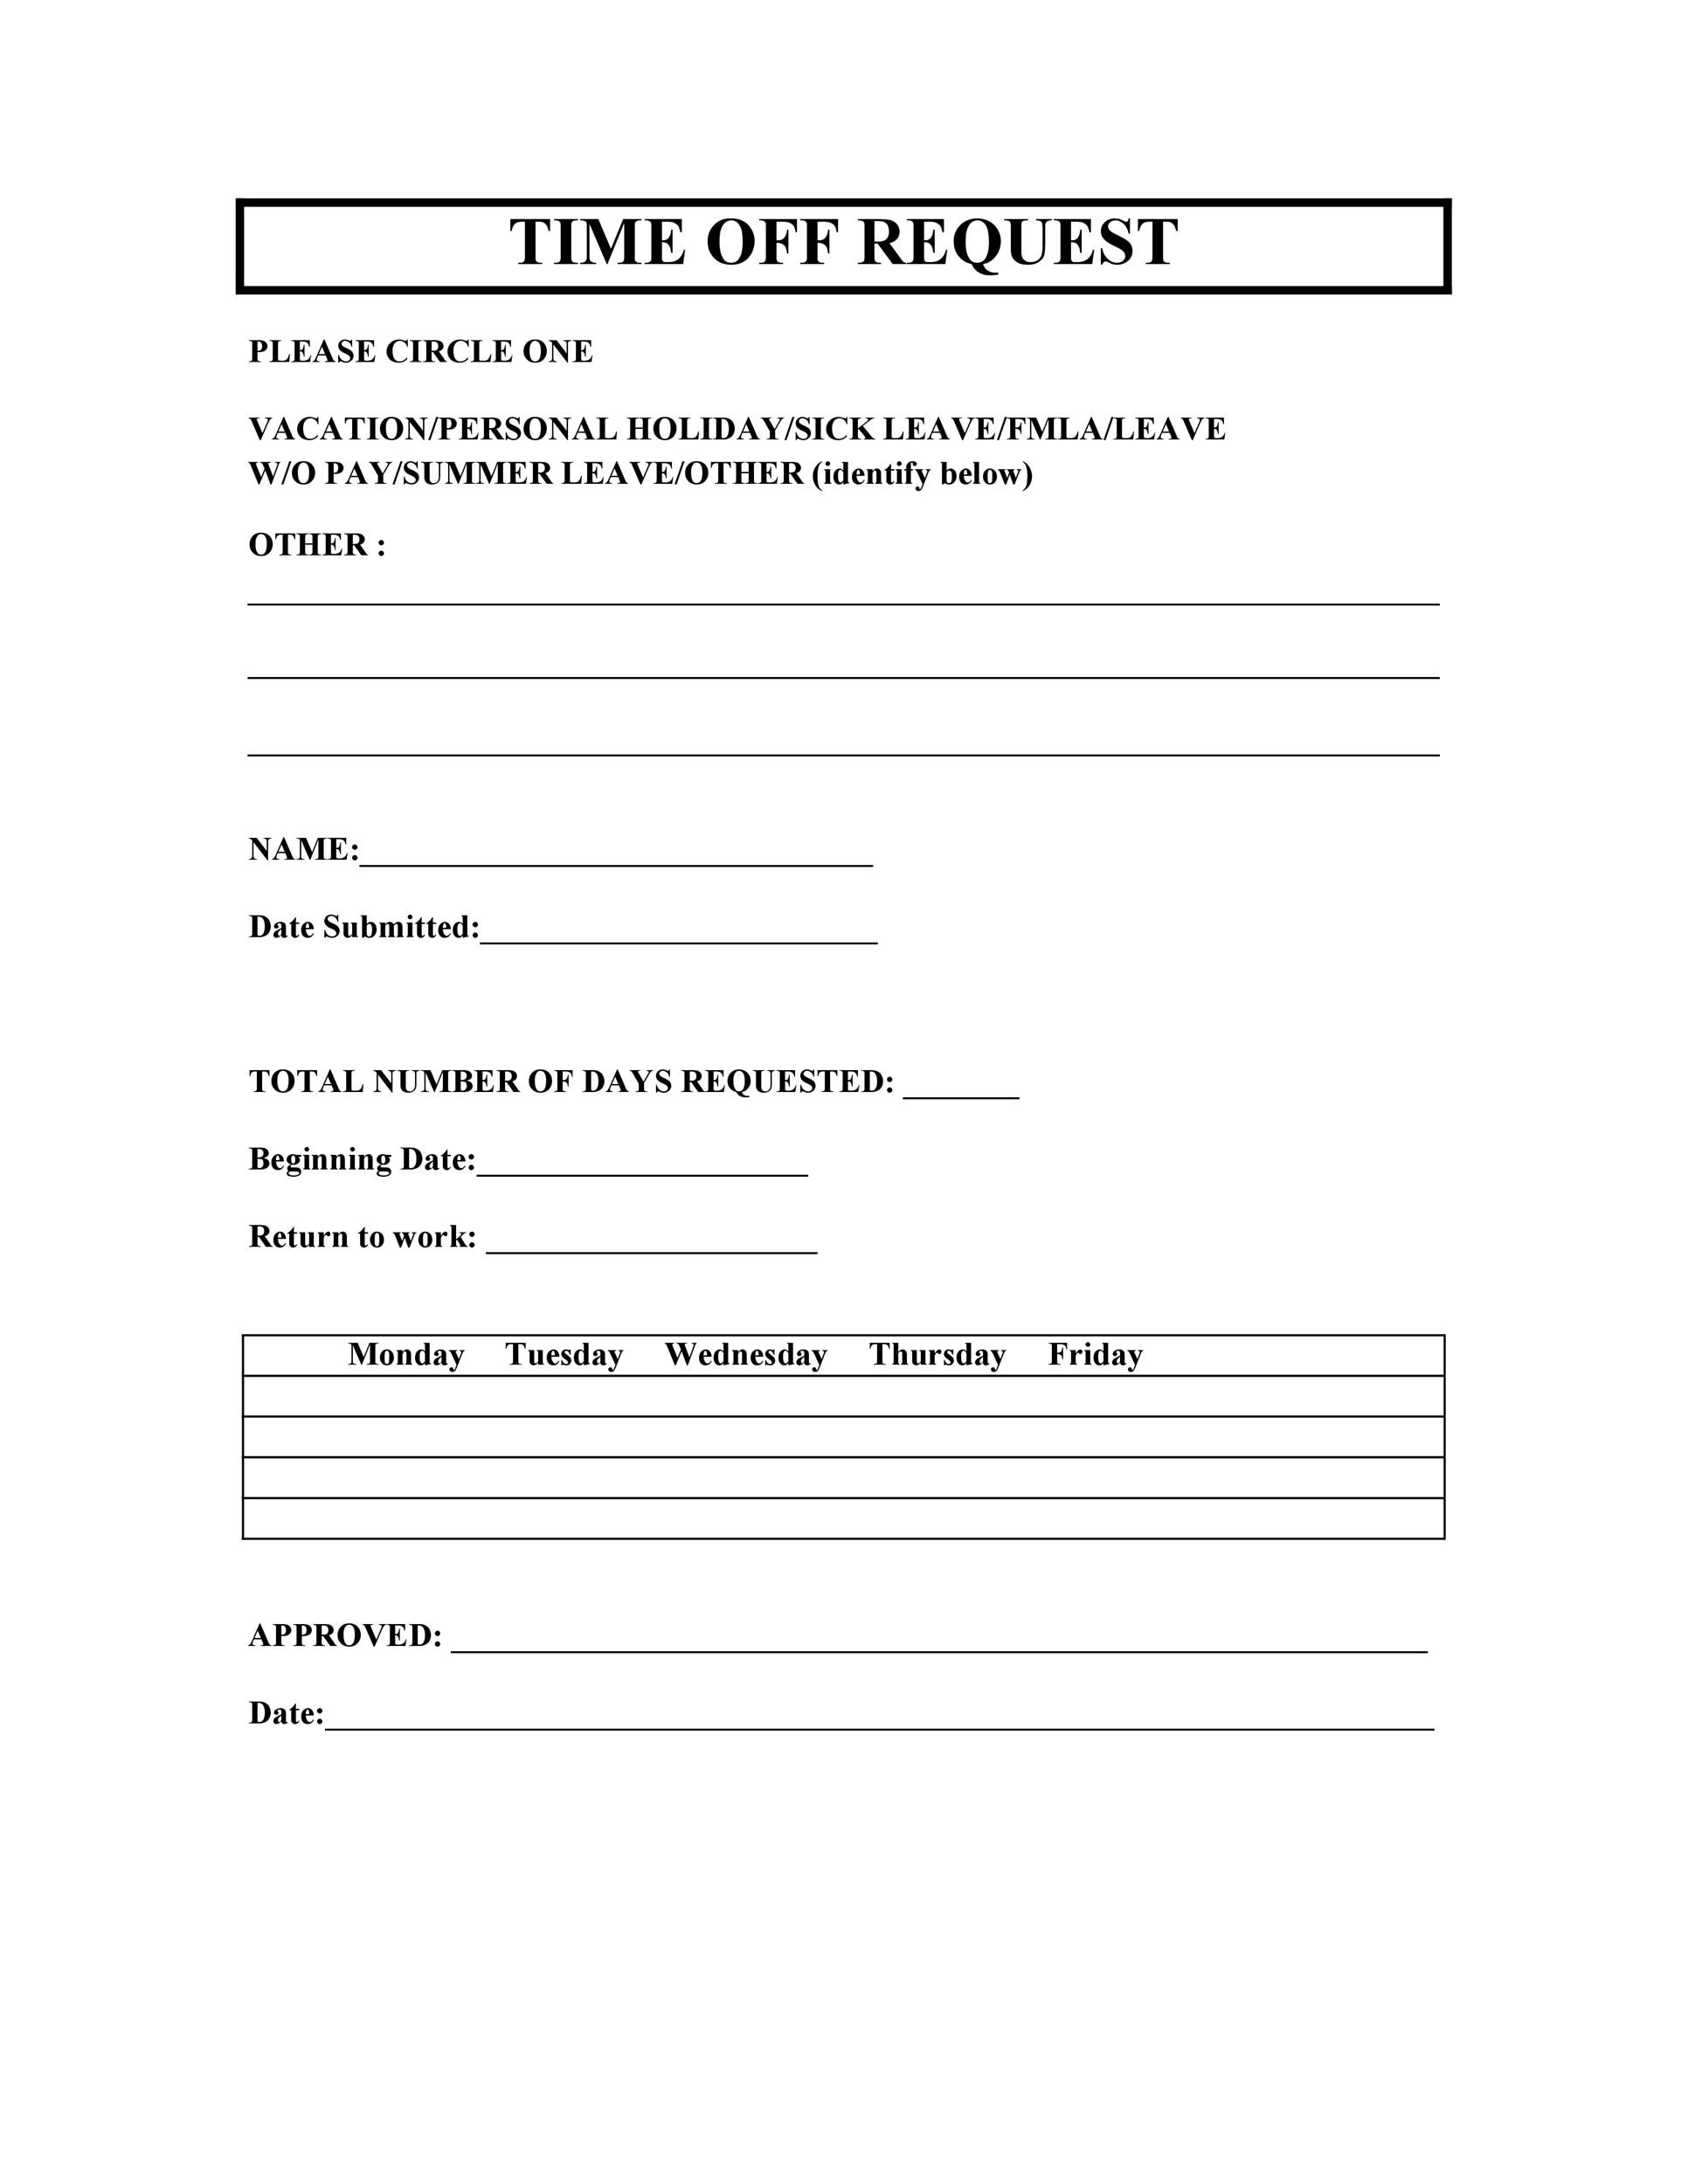 Free time off request form template 31